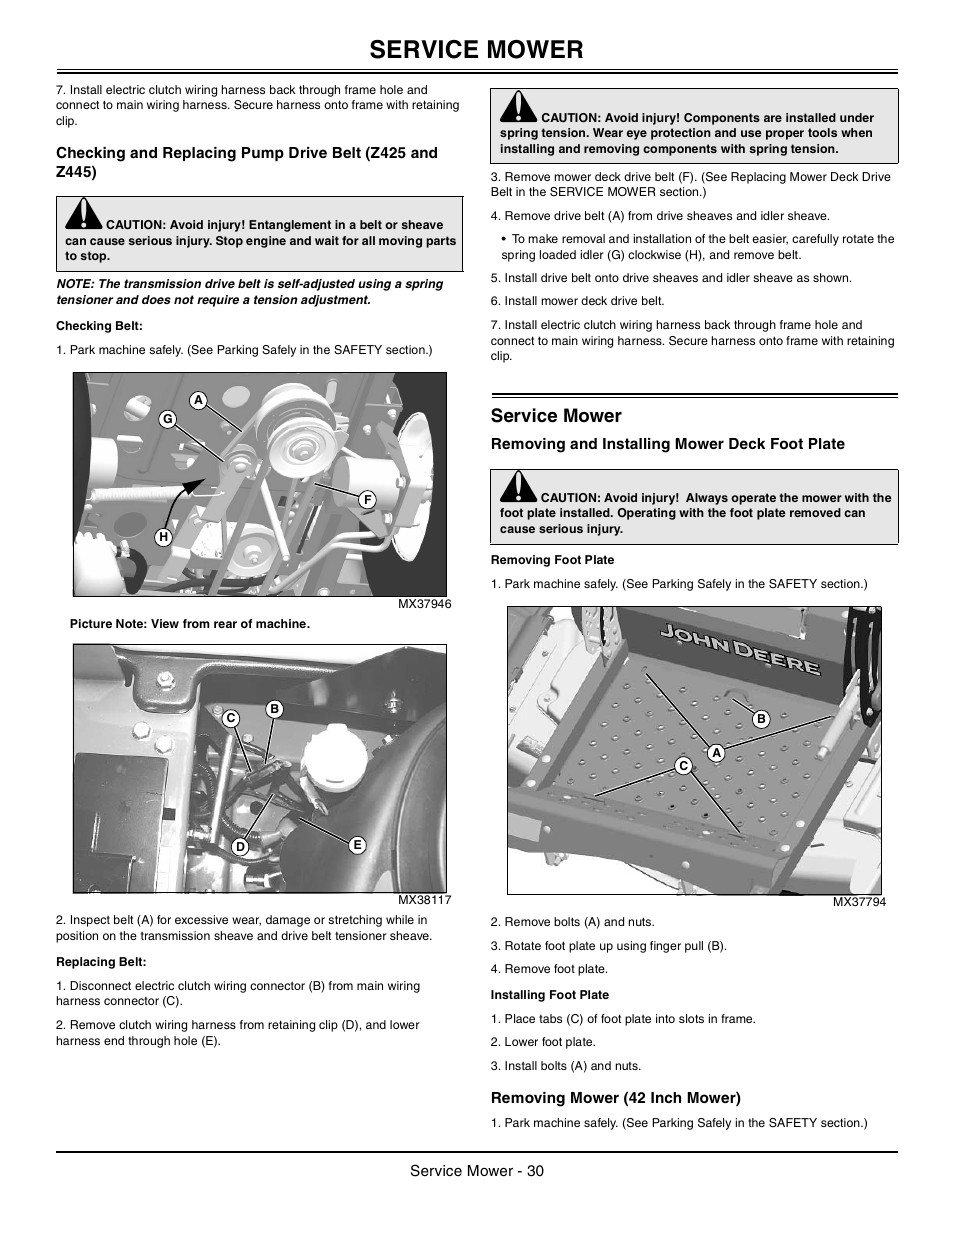 Checking belt, Replacing belt, Service mower | John Deere z425 User Manual  | Page 31 / 48